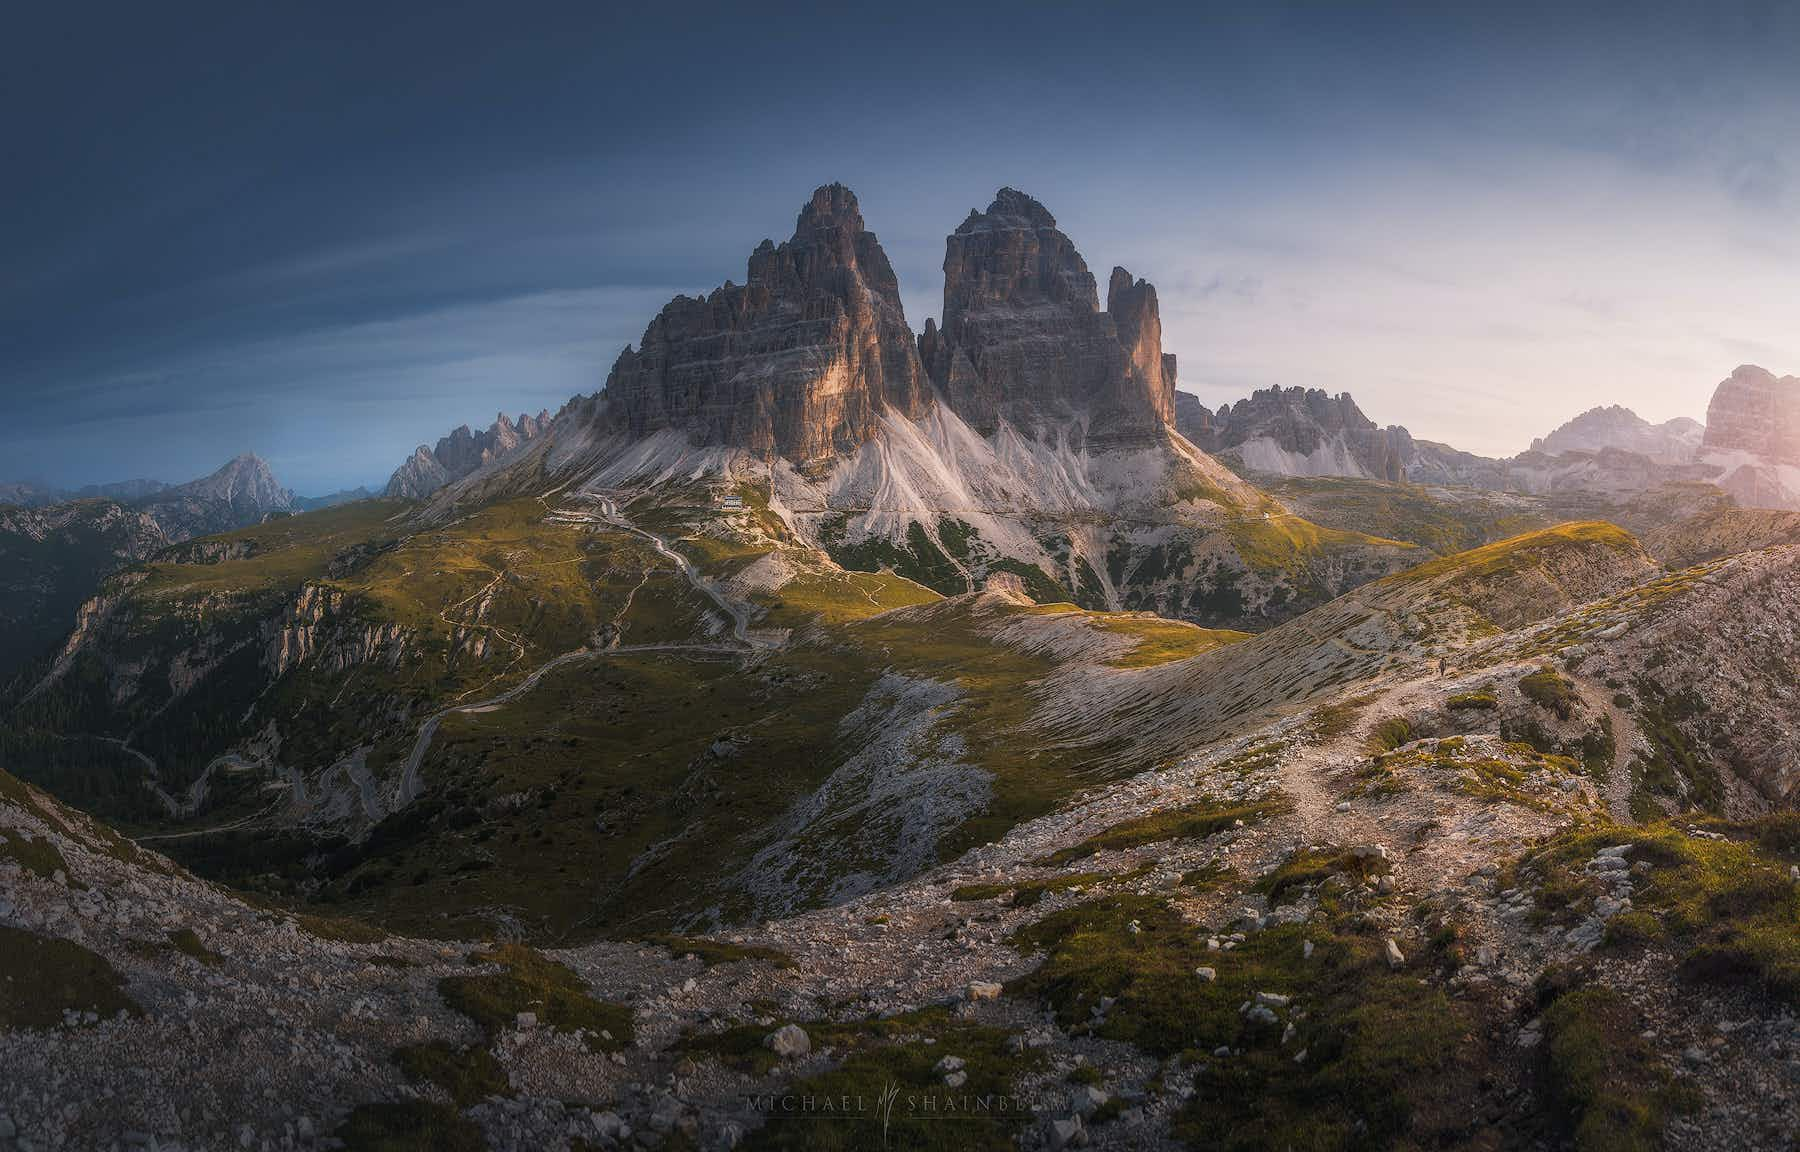 """""""Standing in a fairy tale"""" - photographer shares dramatic images of the Dolomites"""